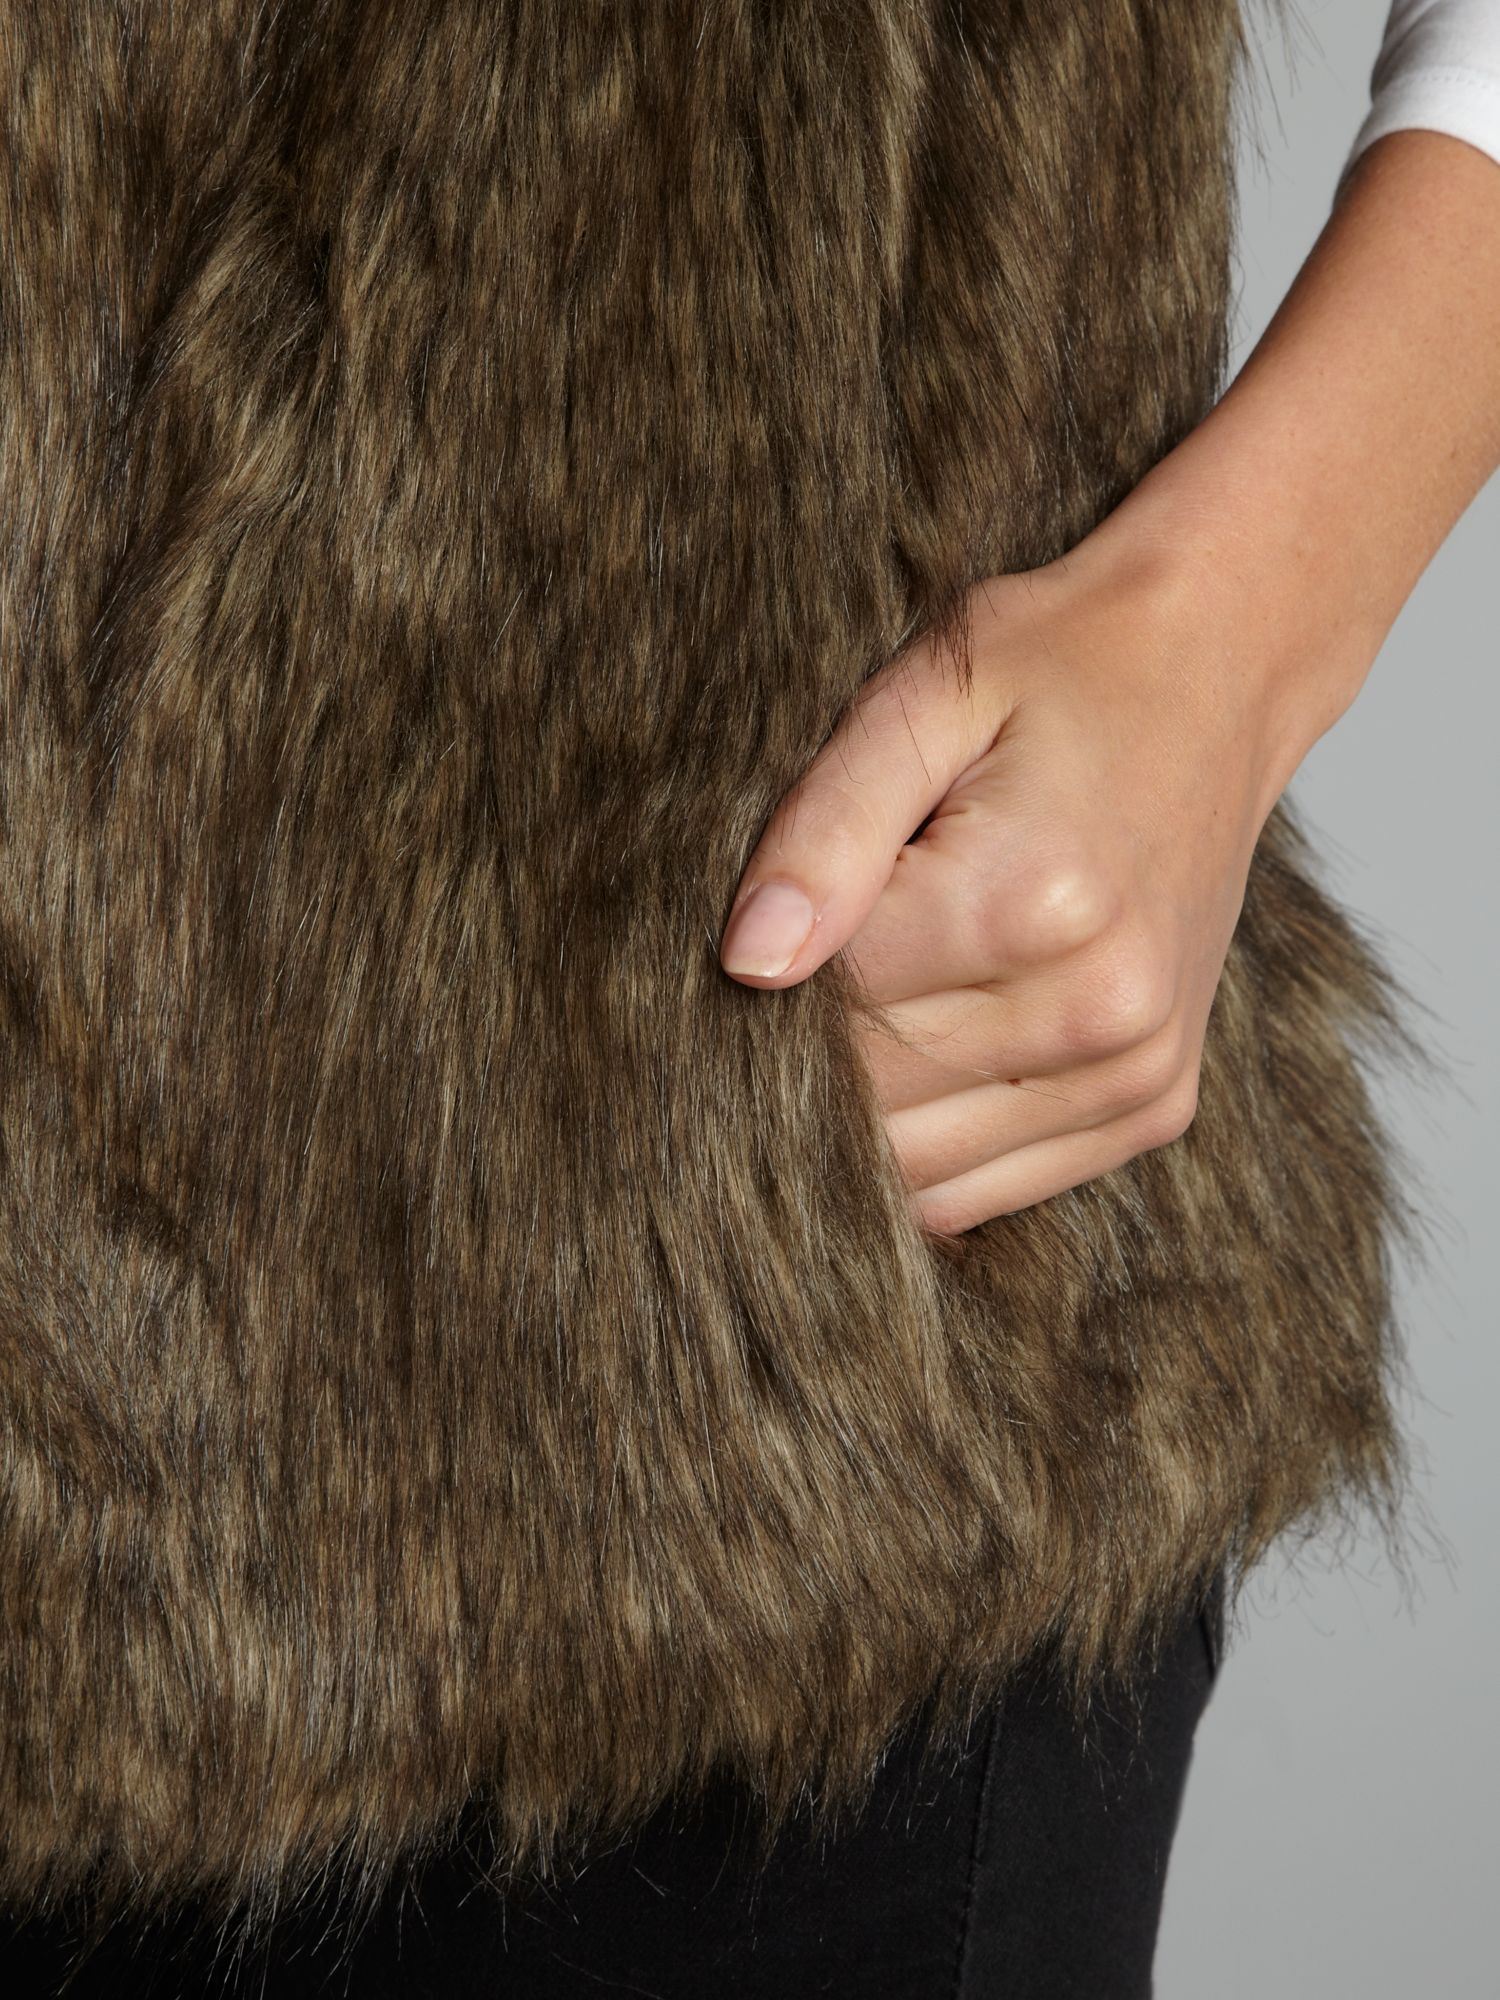 Featuring faux fur fabric by the yard imitating various animal fur and skin textures. Fashion Faux Fur Fabric 57